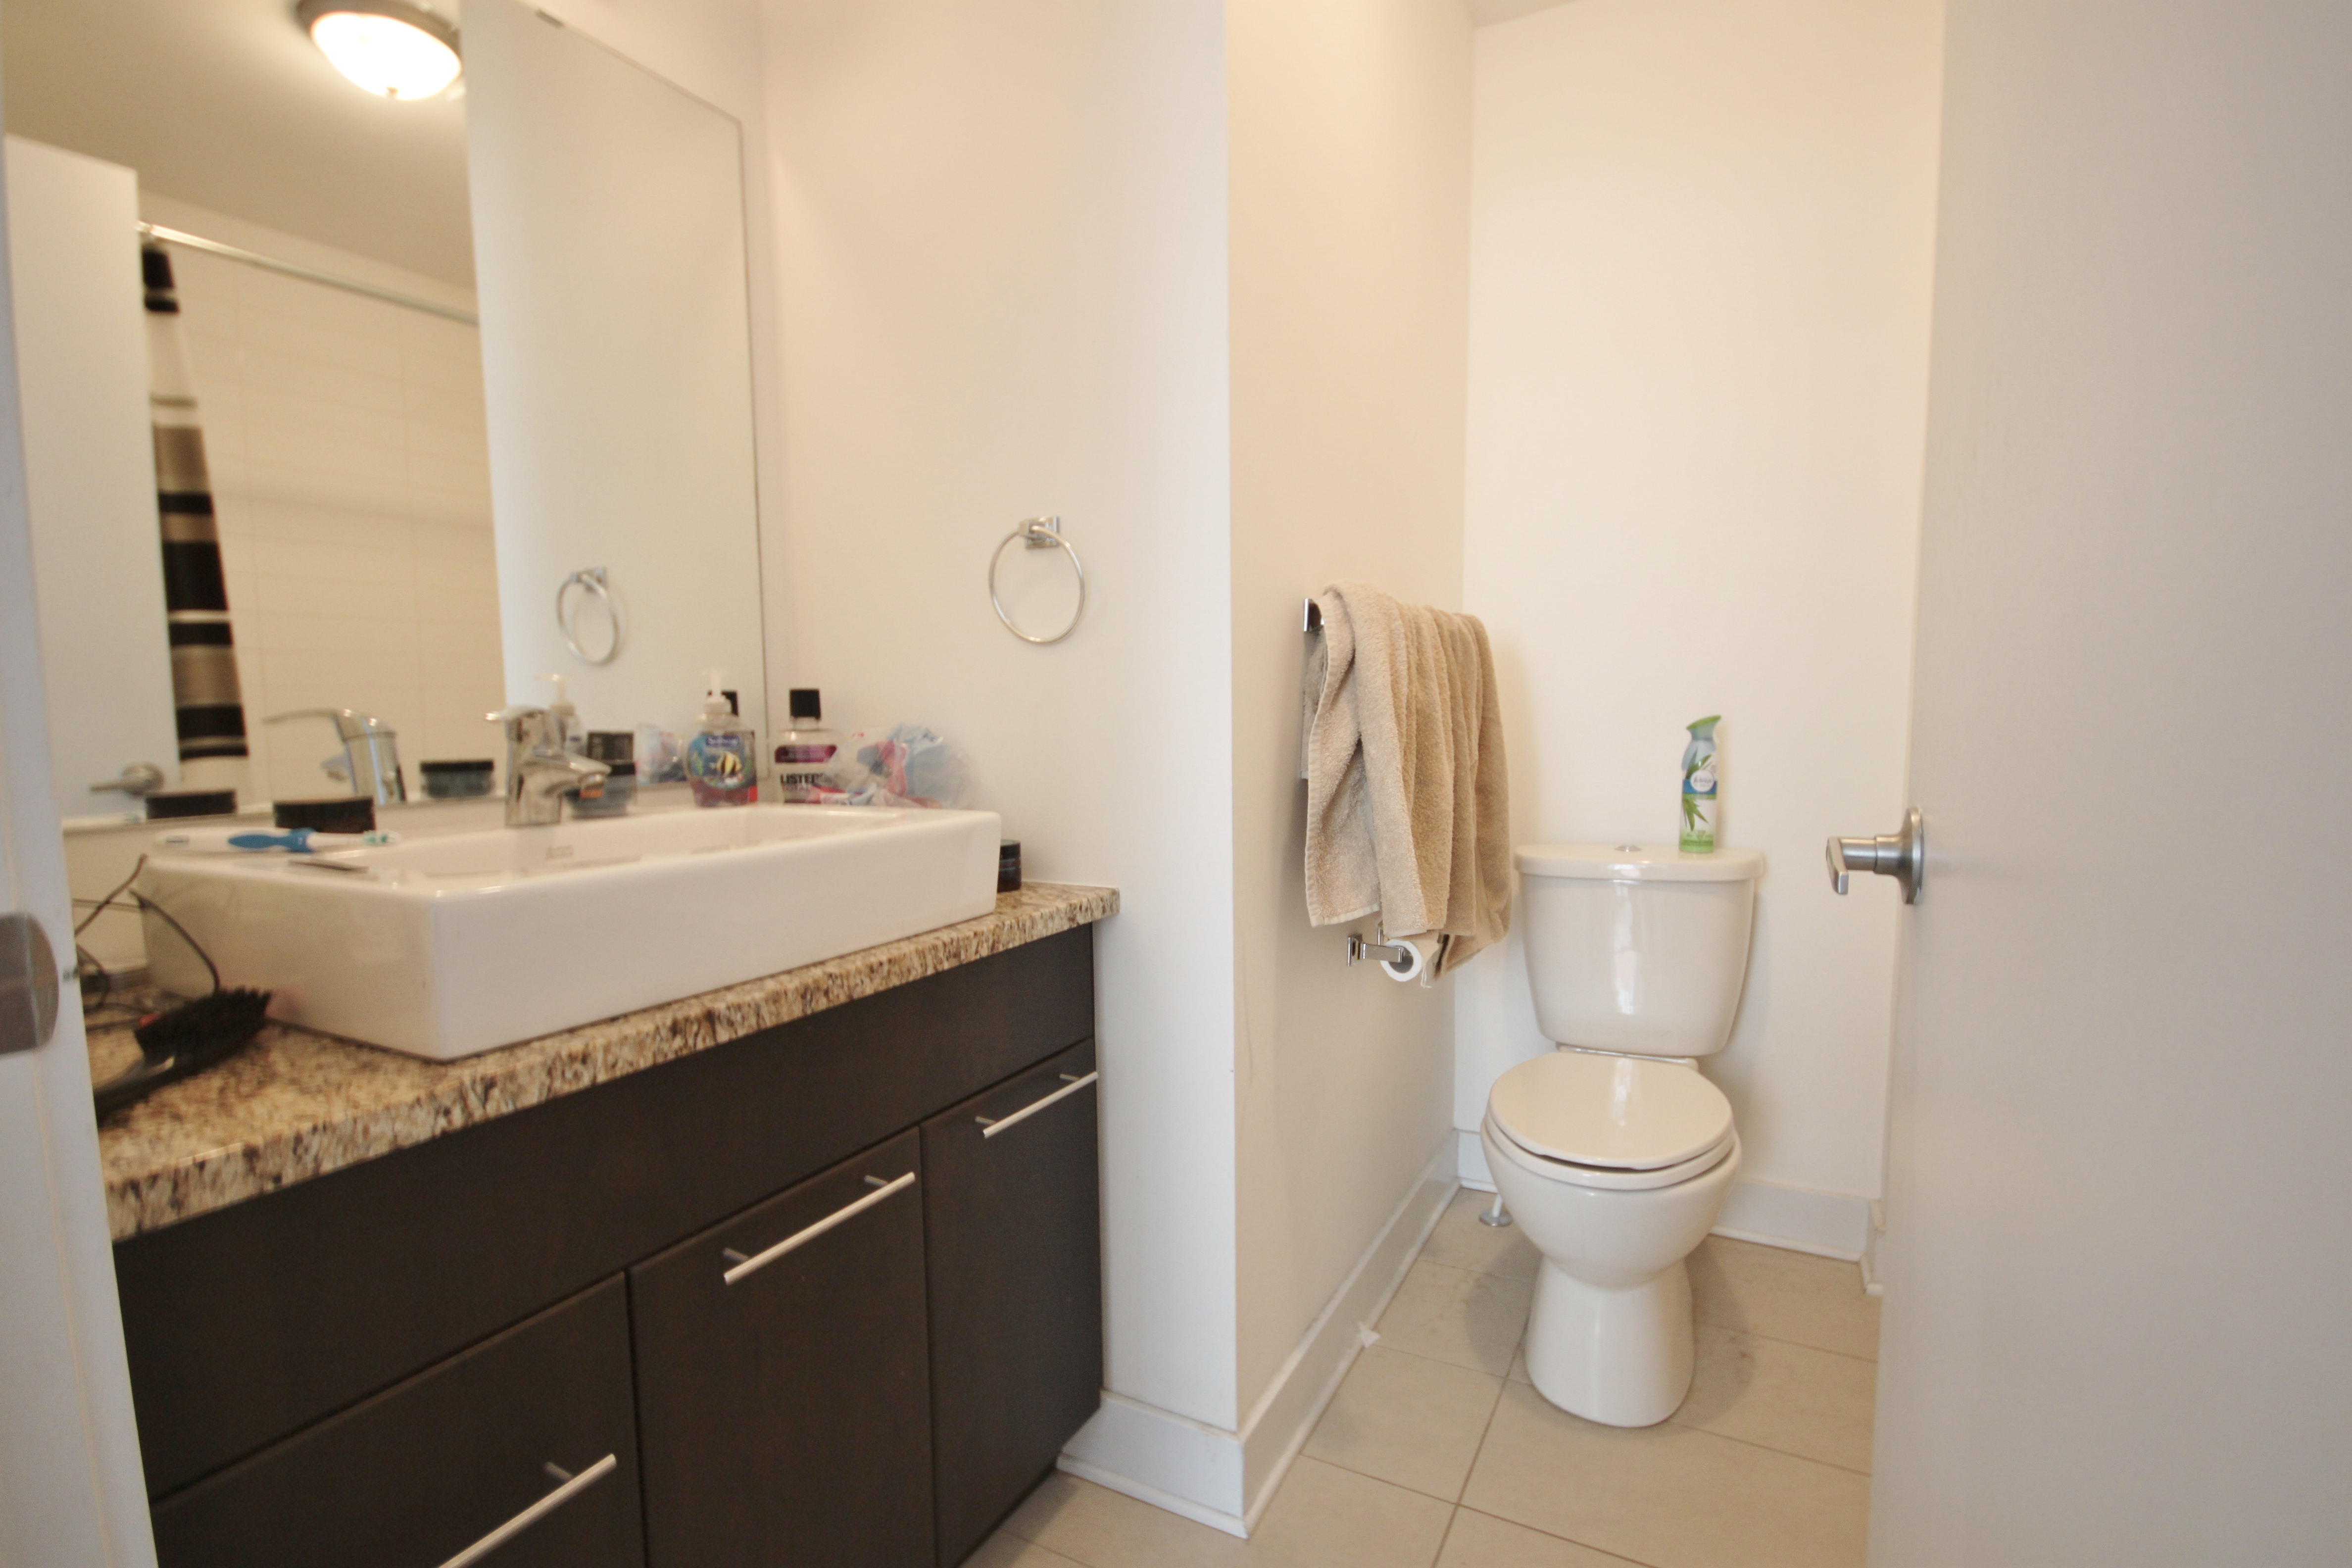 Spacious modern bathroom, with tiled flooring and shower area.